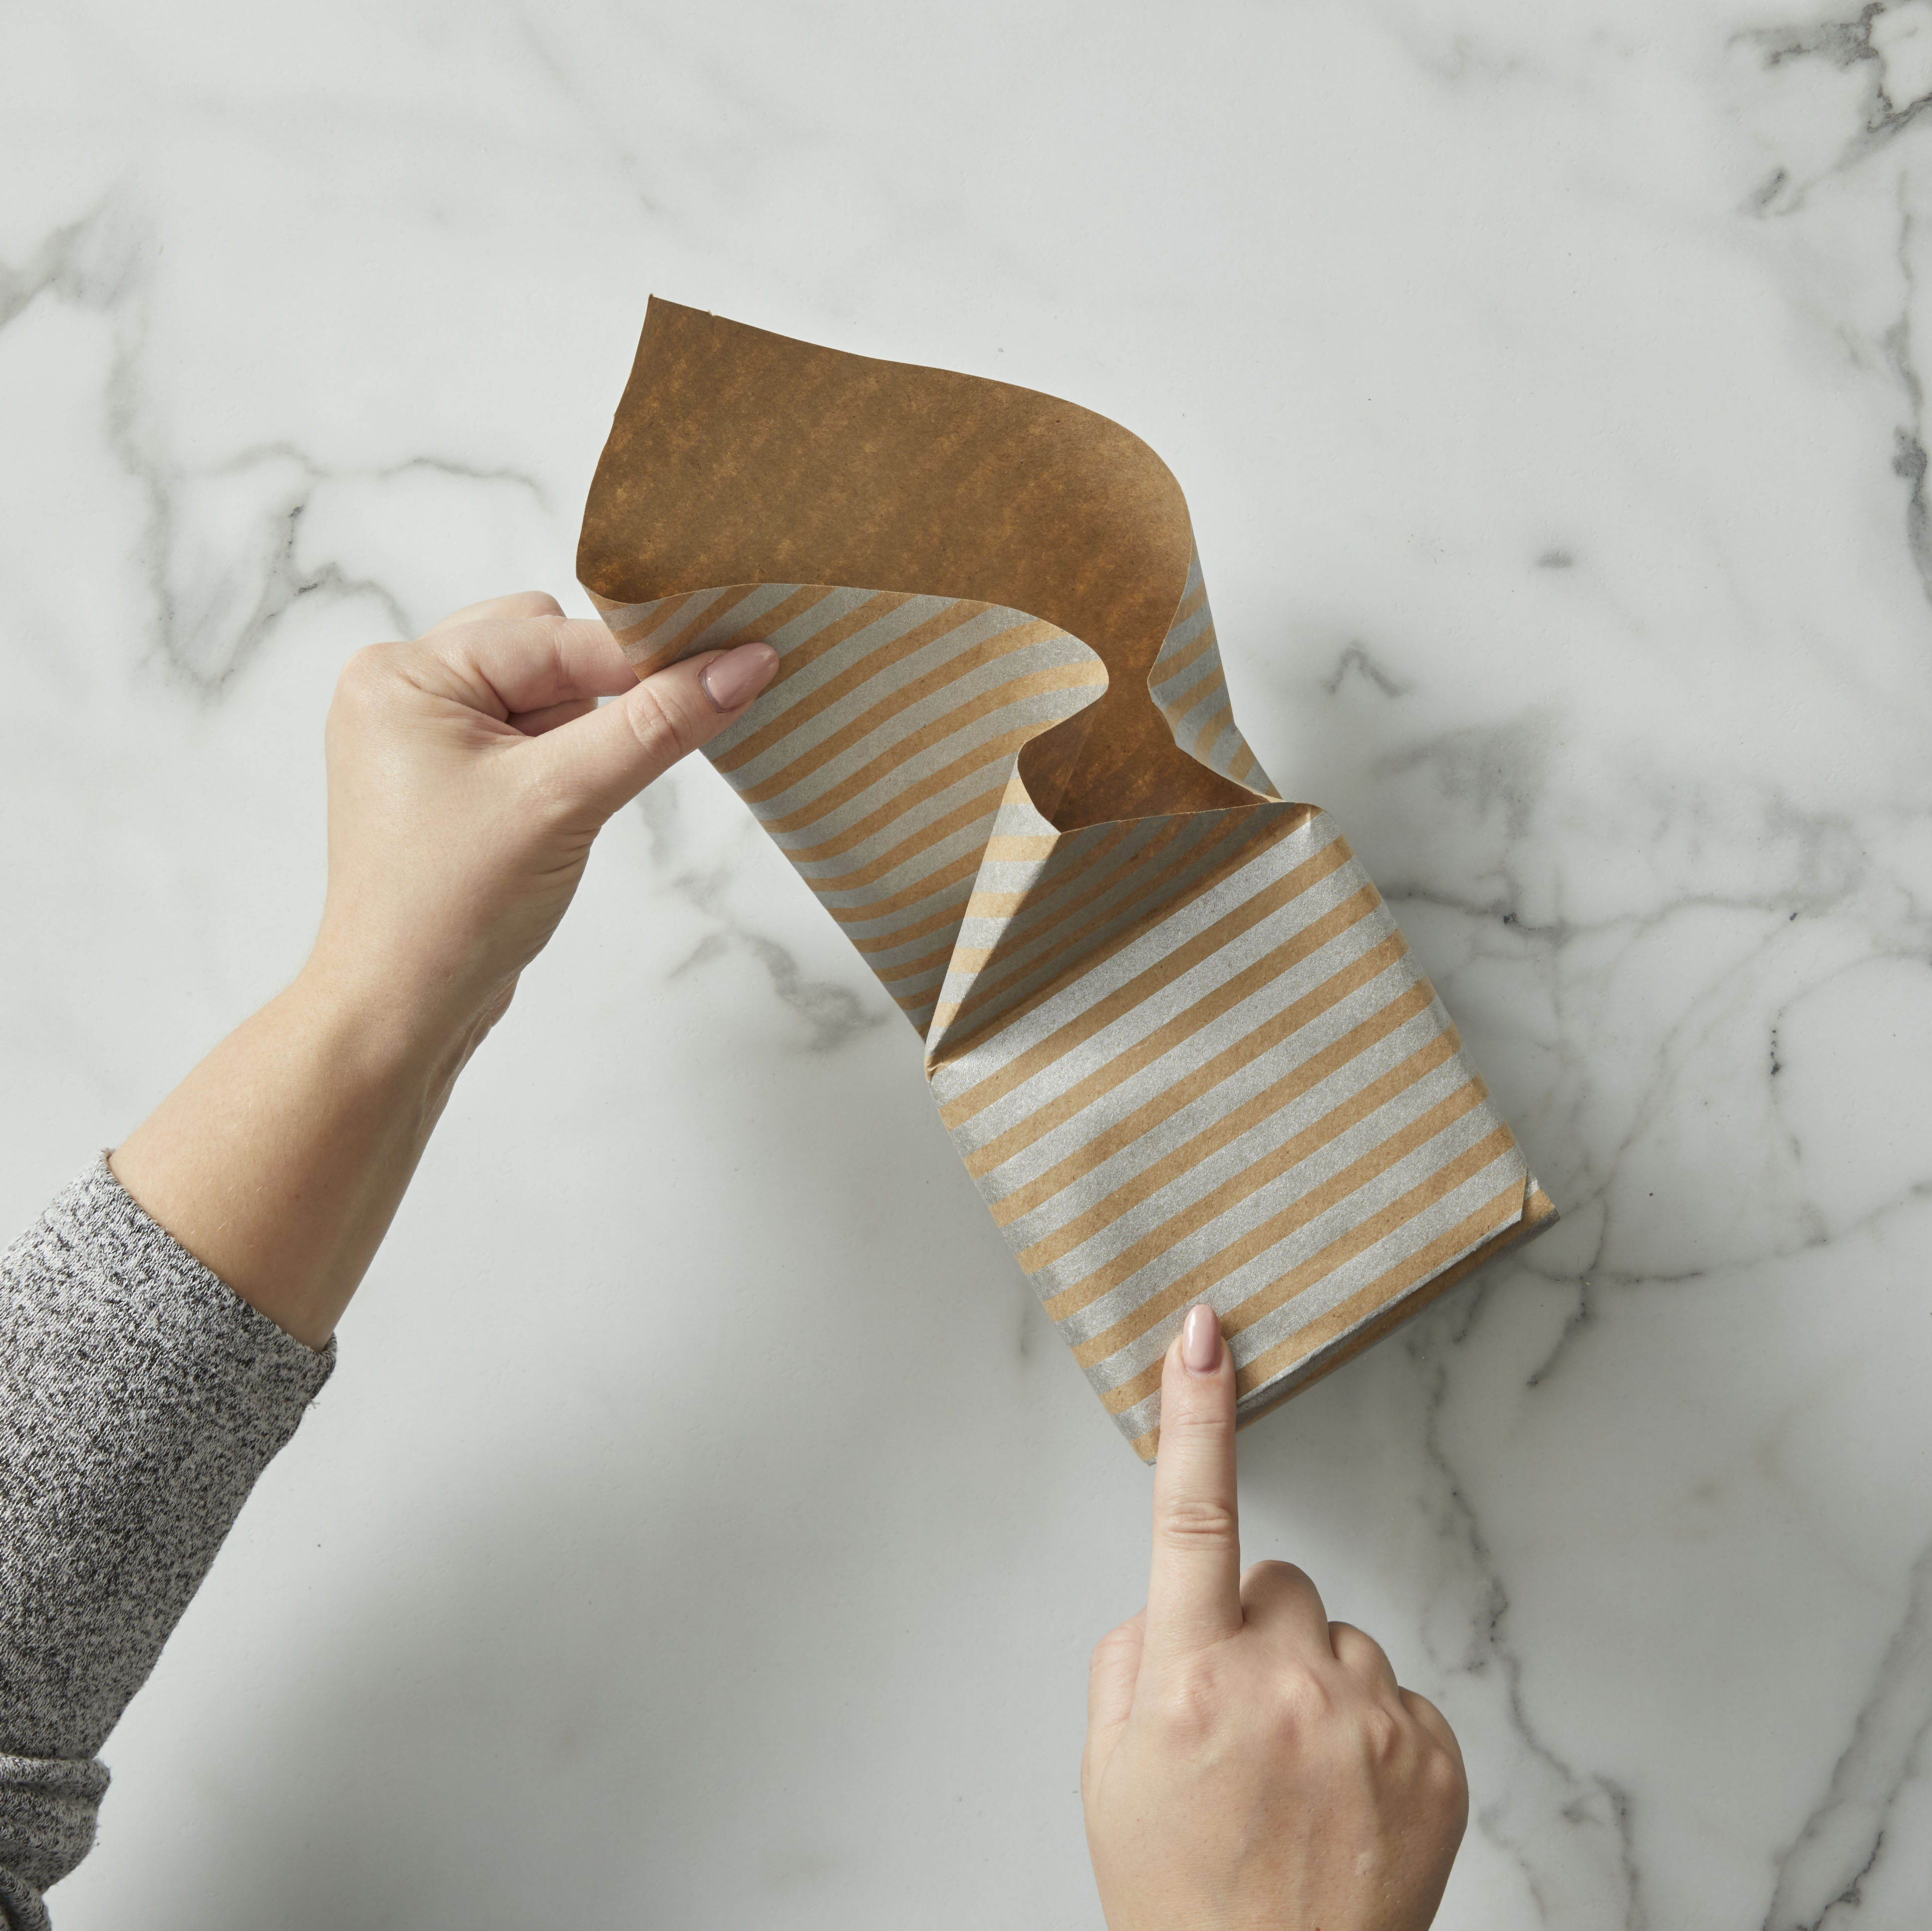 Wrapping striped wrapping paper over a square box